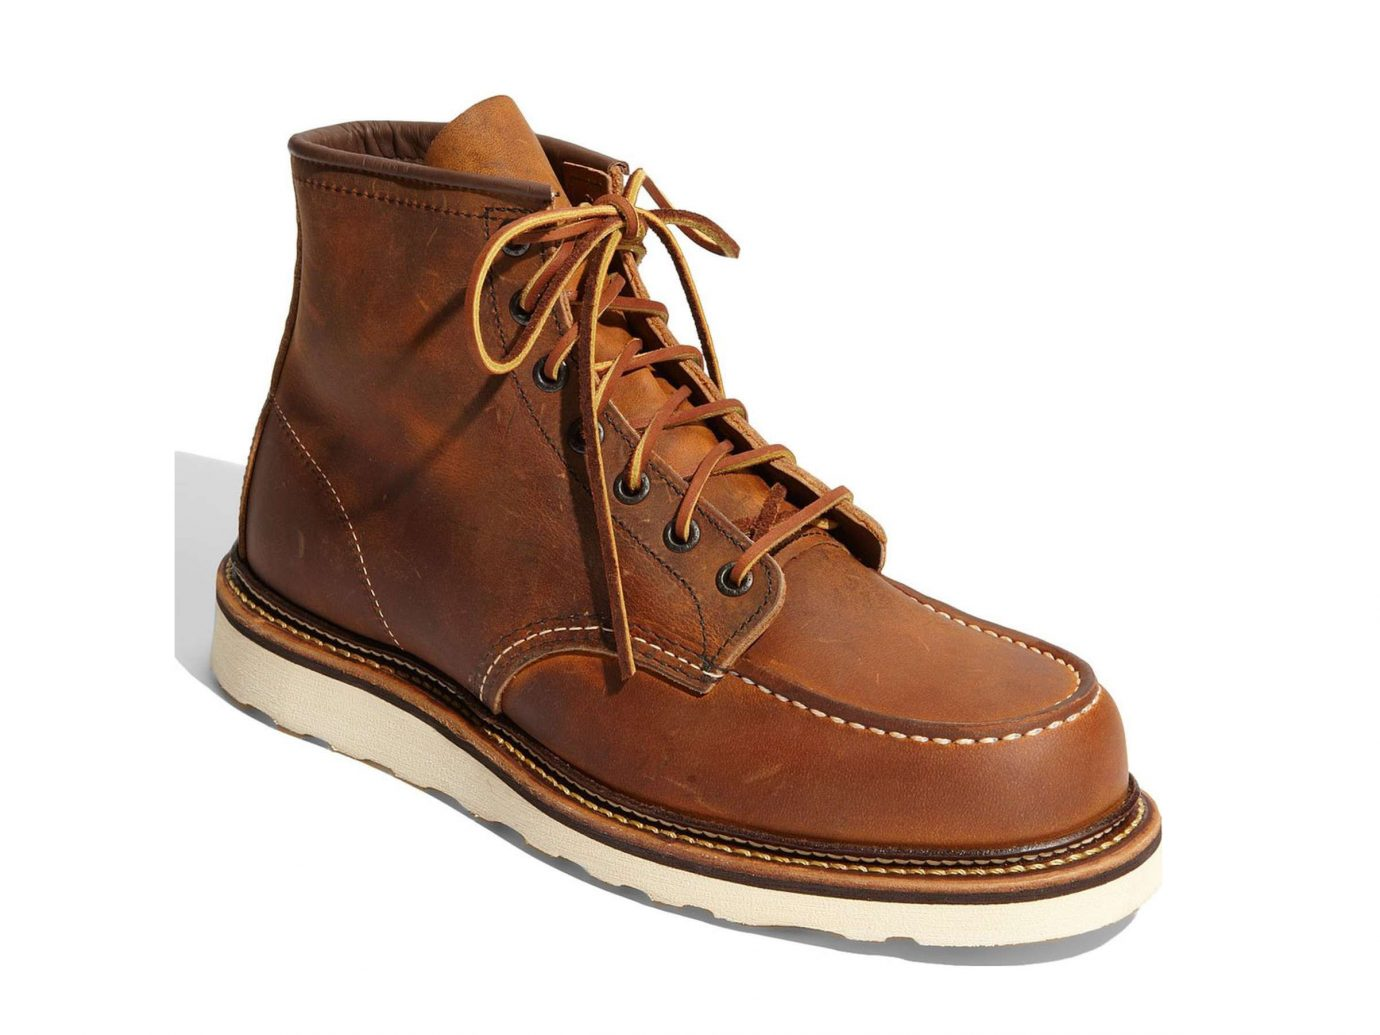 Style + Design Travel Shop footwear boot brown shoe work boots product walking shoe leather outdoor shoe